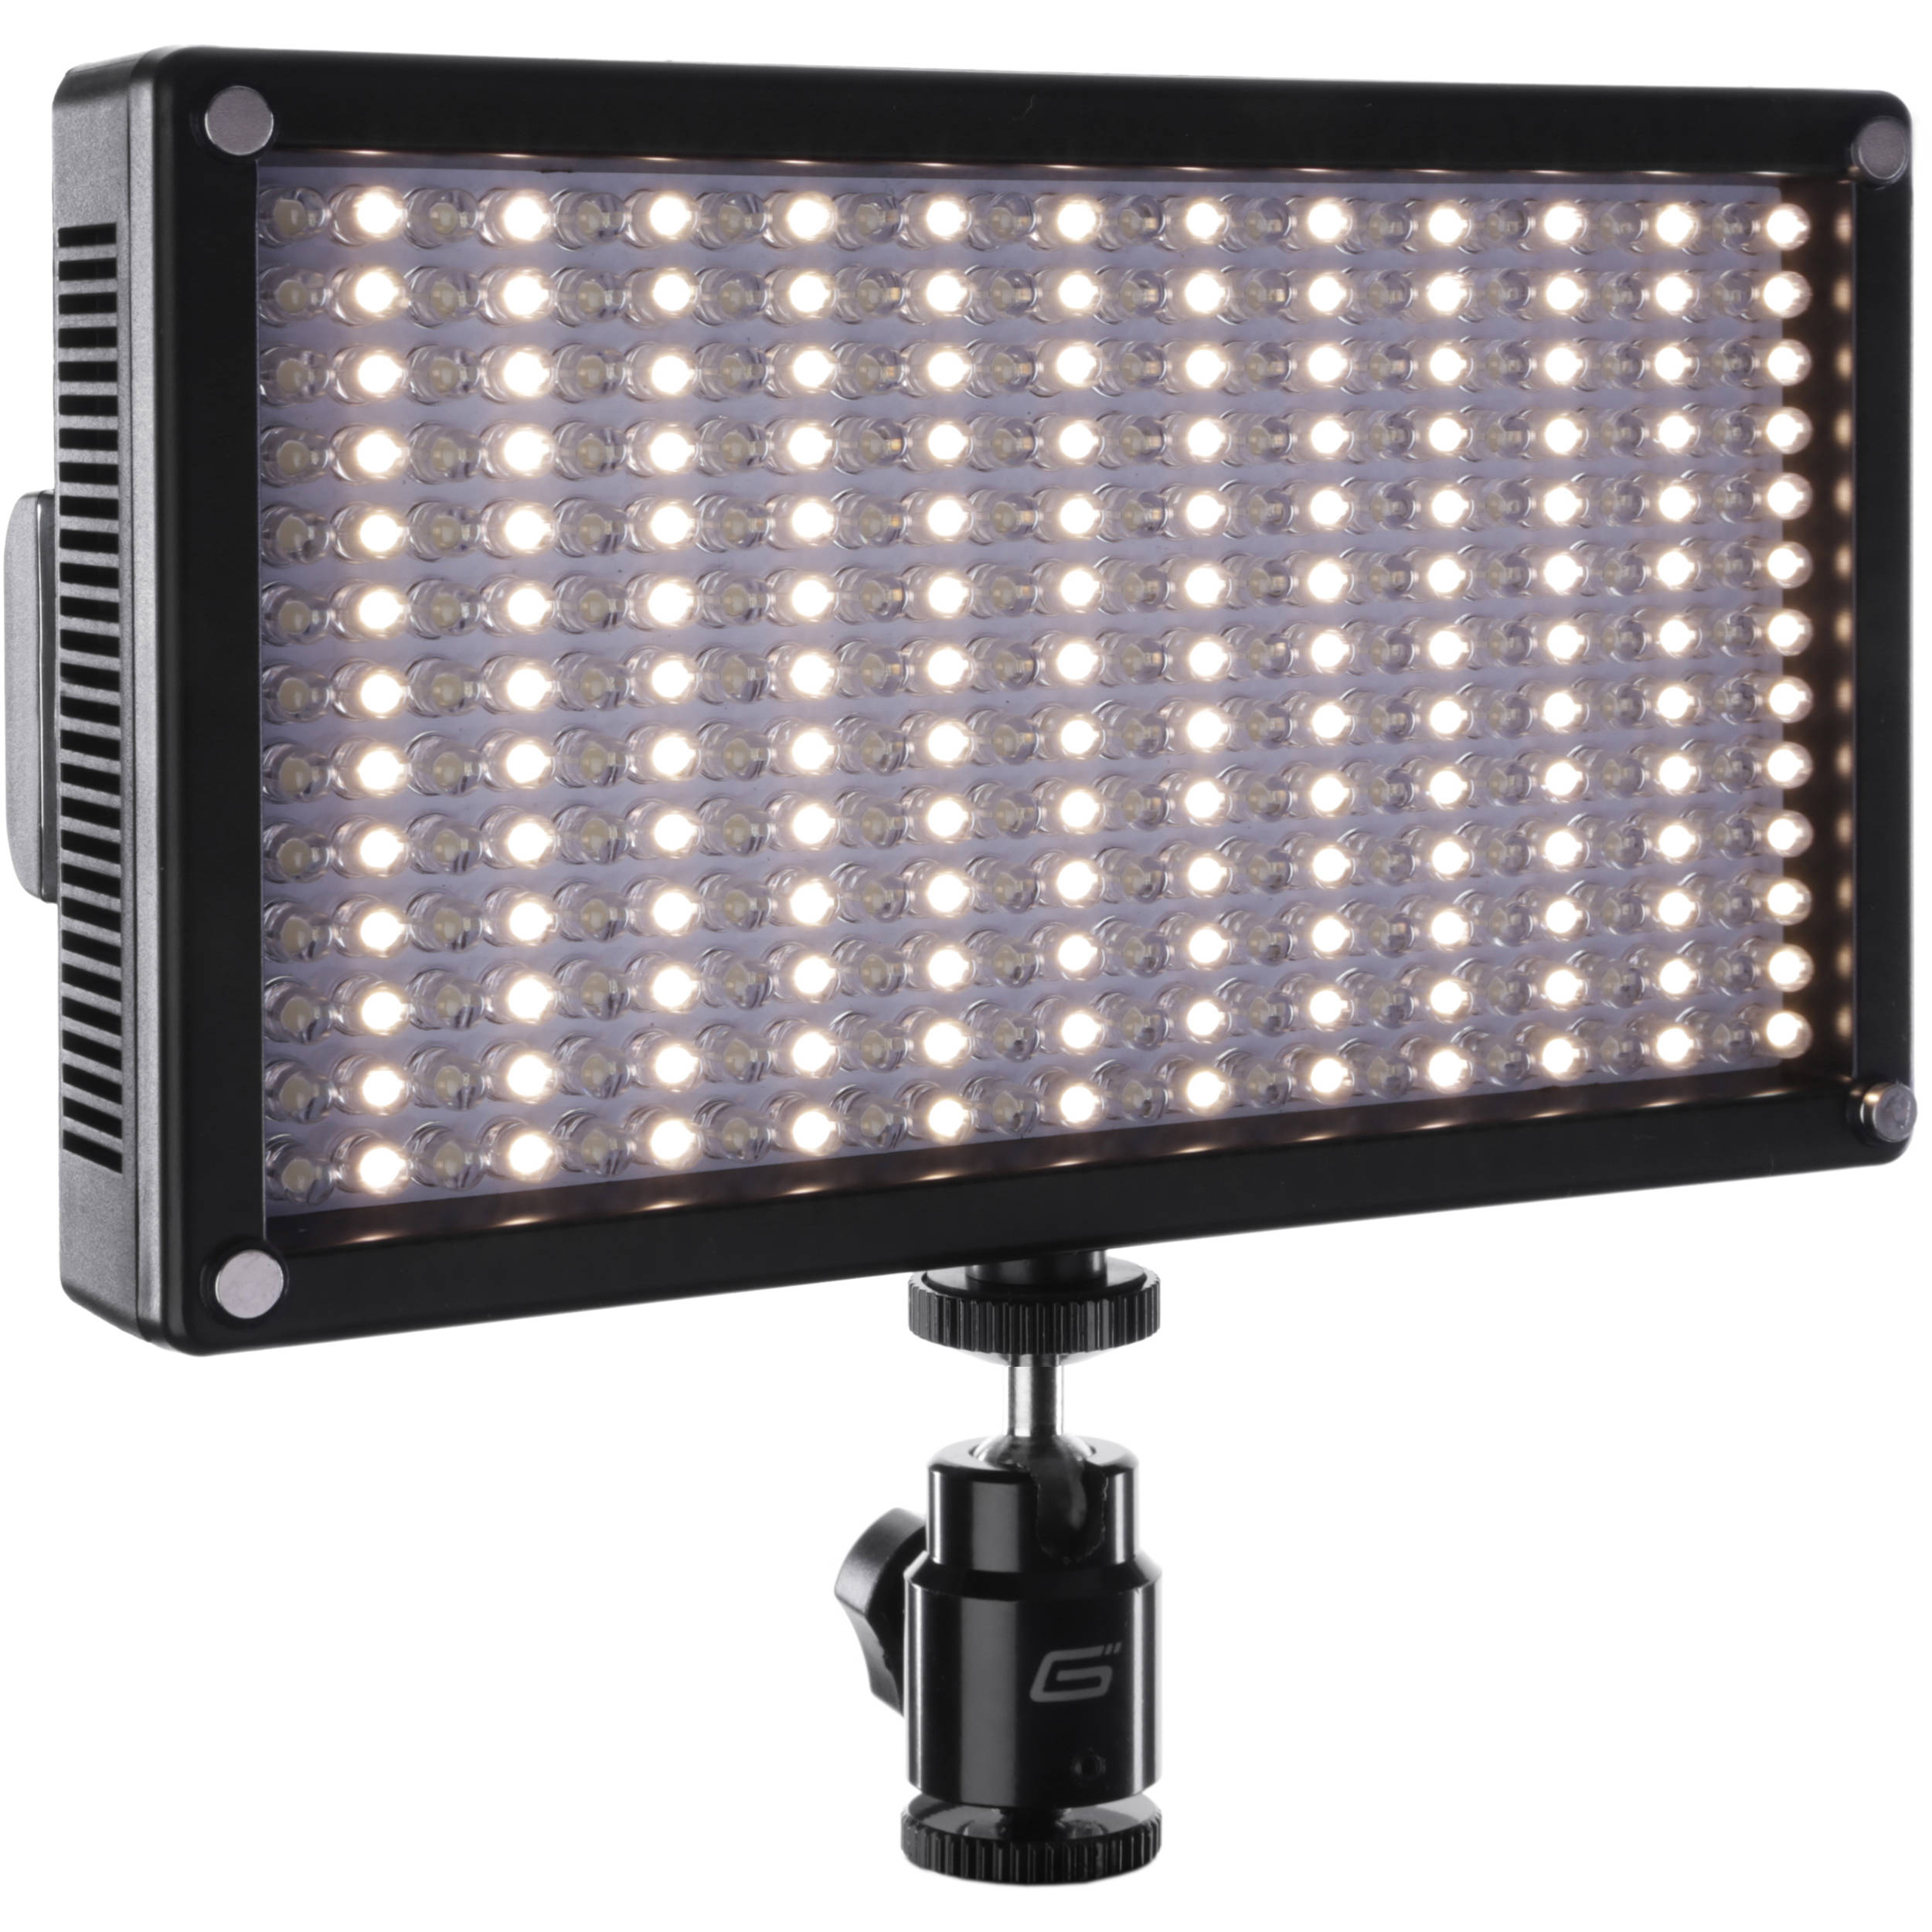 Genaray led 7100t 312 led variable color on camera light